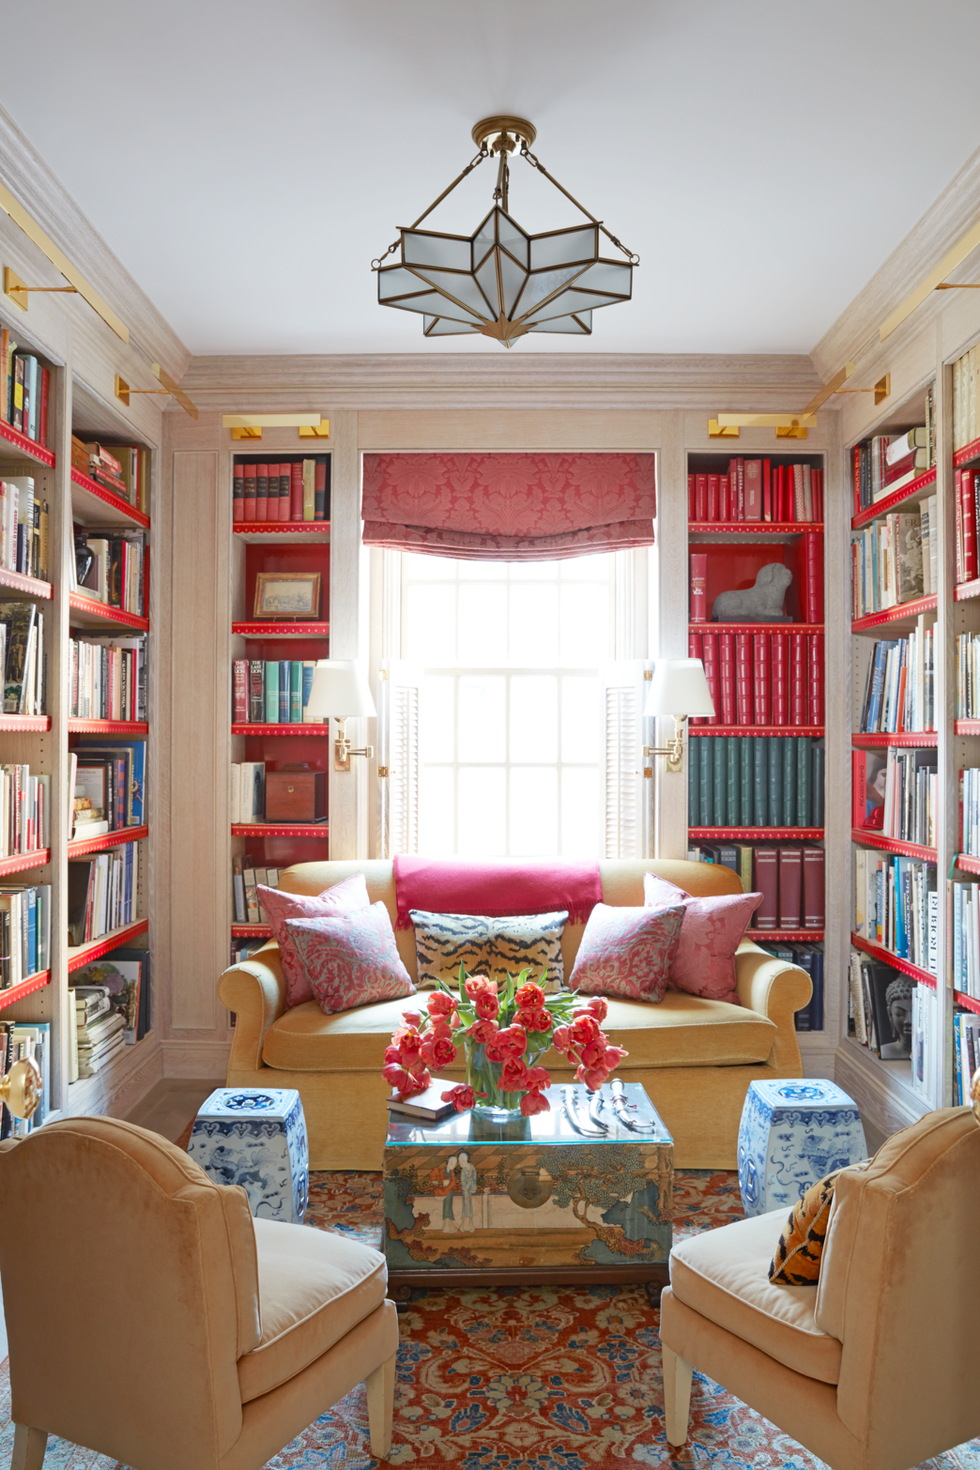 Interior Design Home Library: 15 Stylish Home Libraries You'll Want To Cozy Into